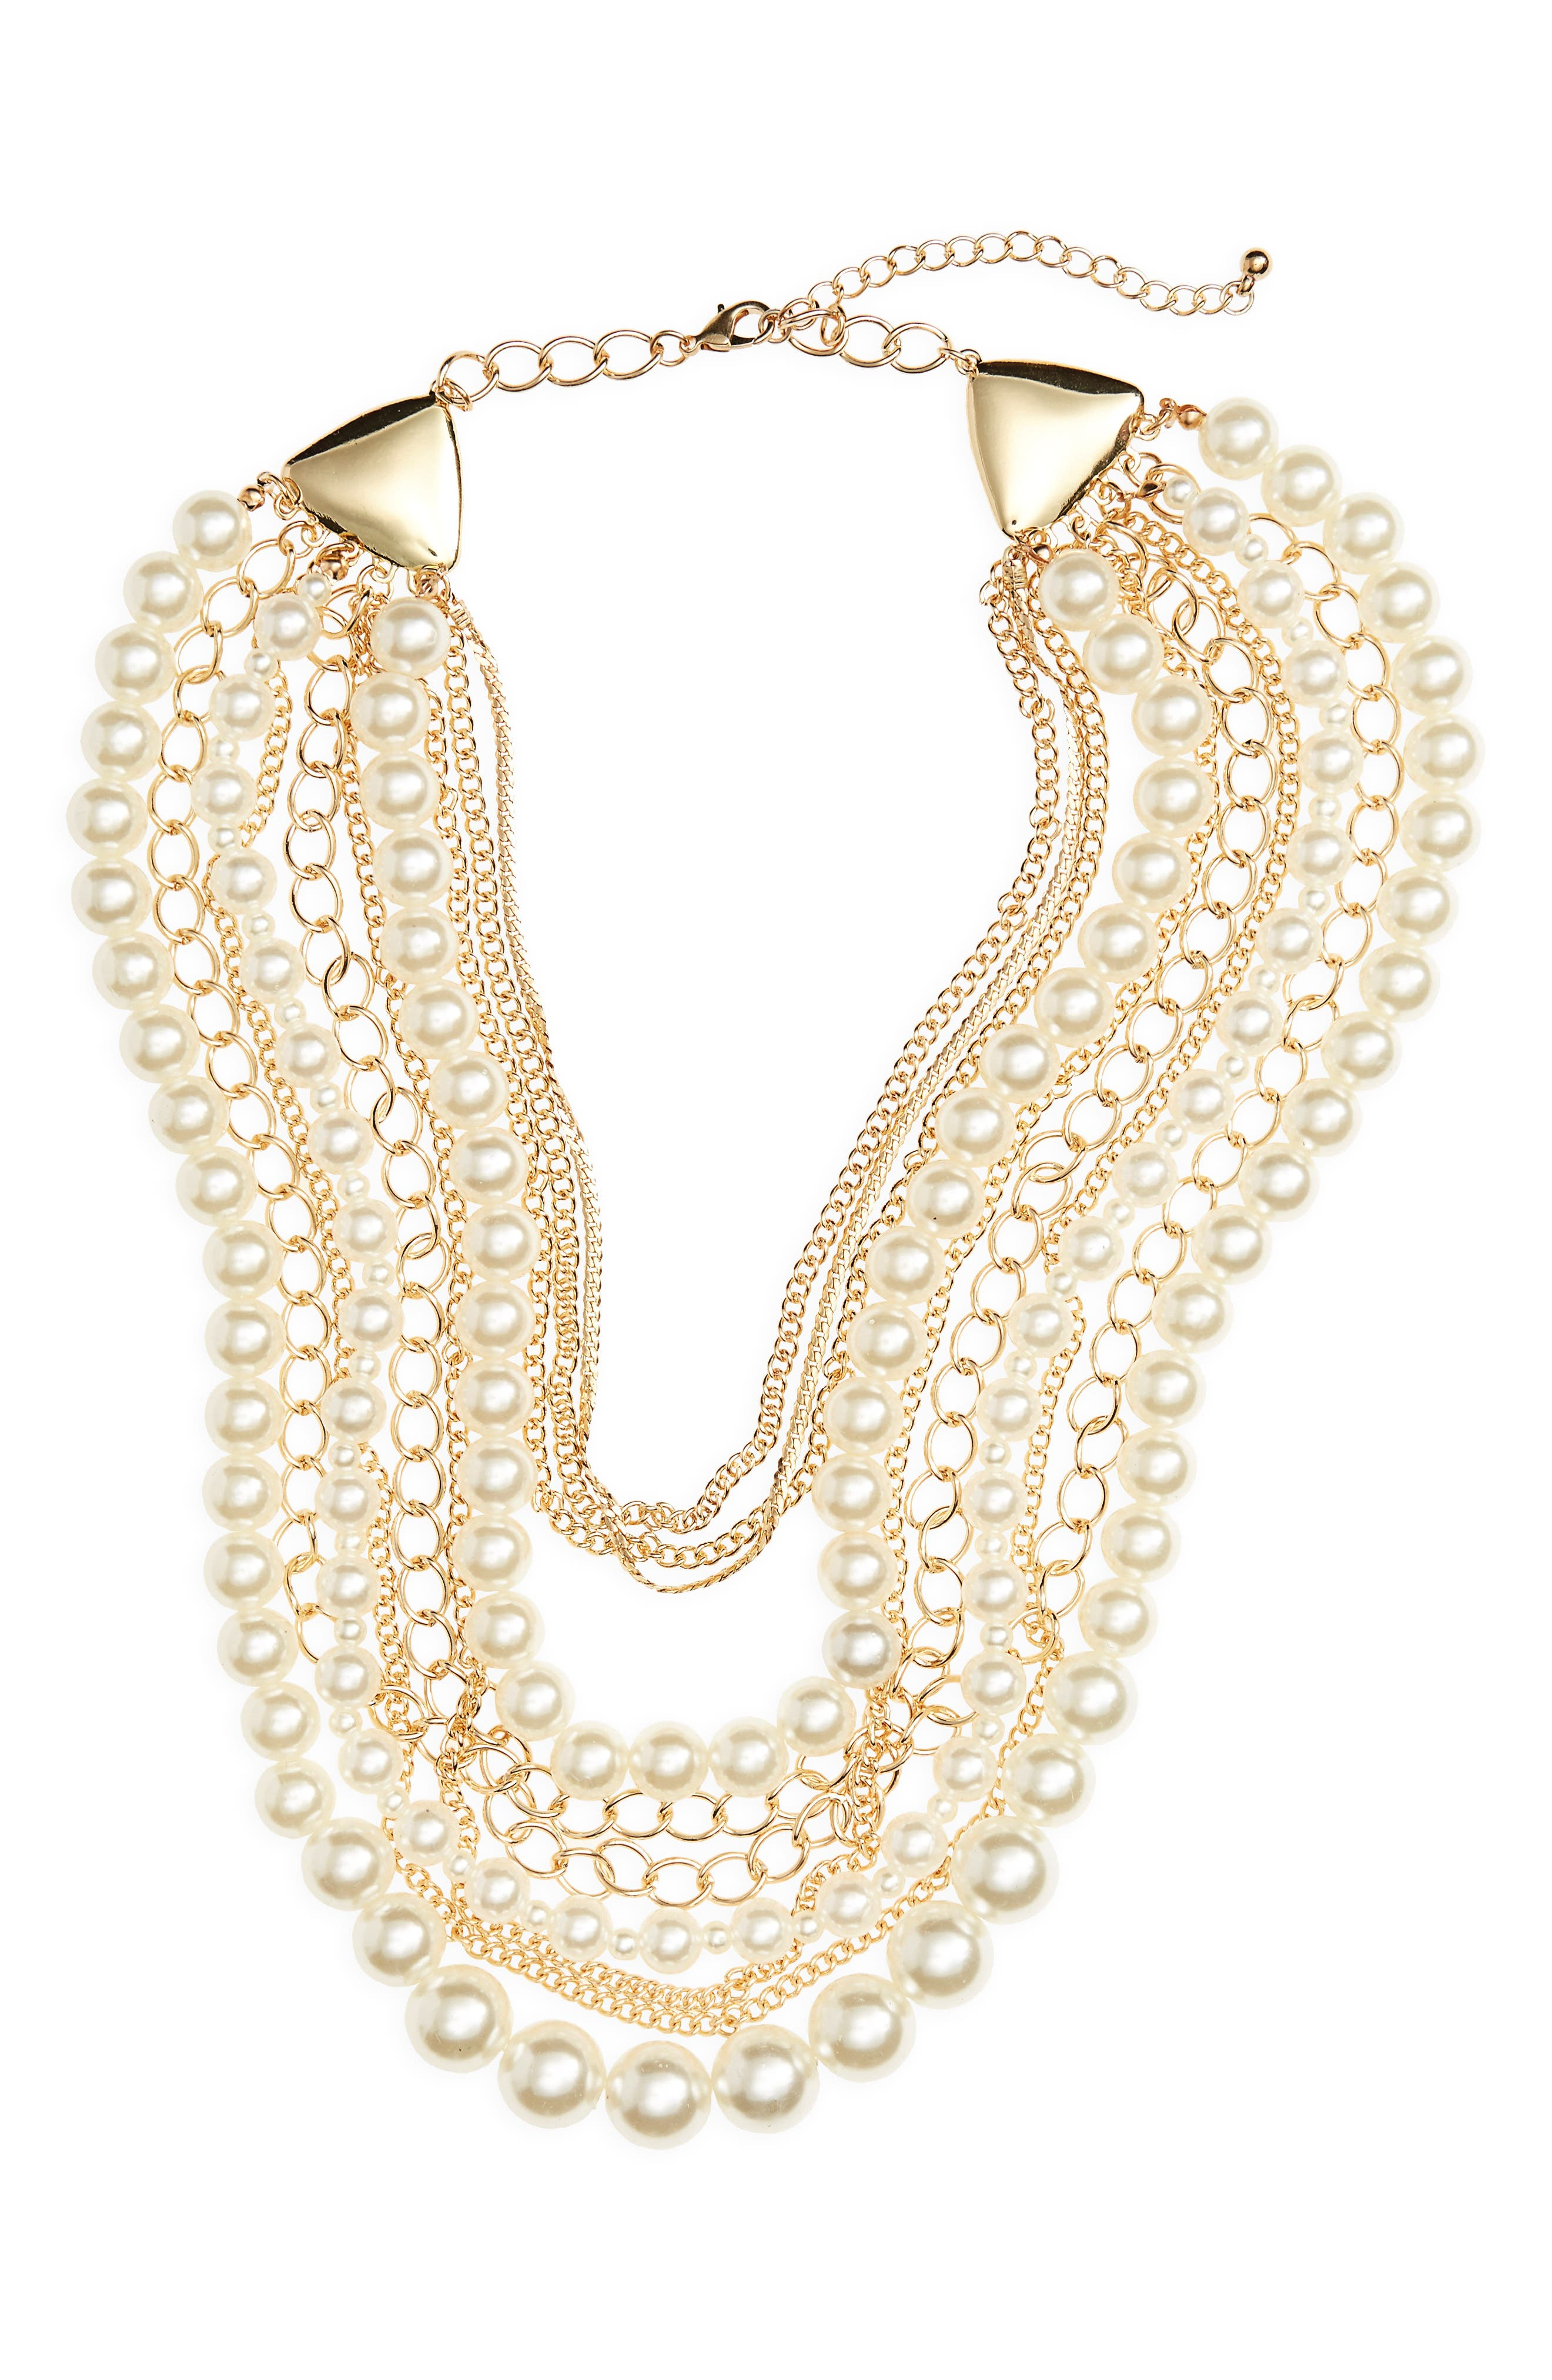 Imitation Pearl Chain Necklace,                         Main,                         color, 710